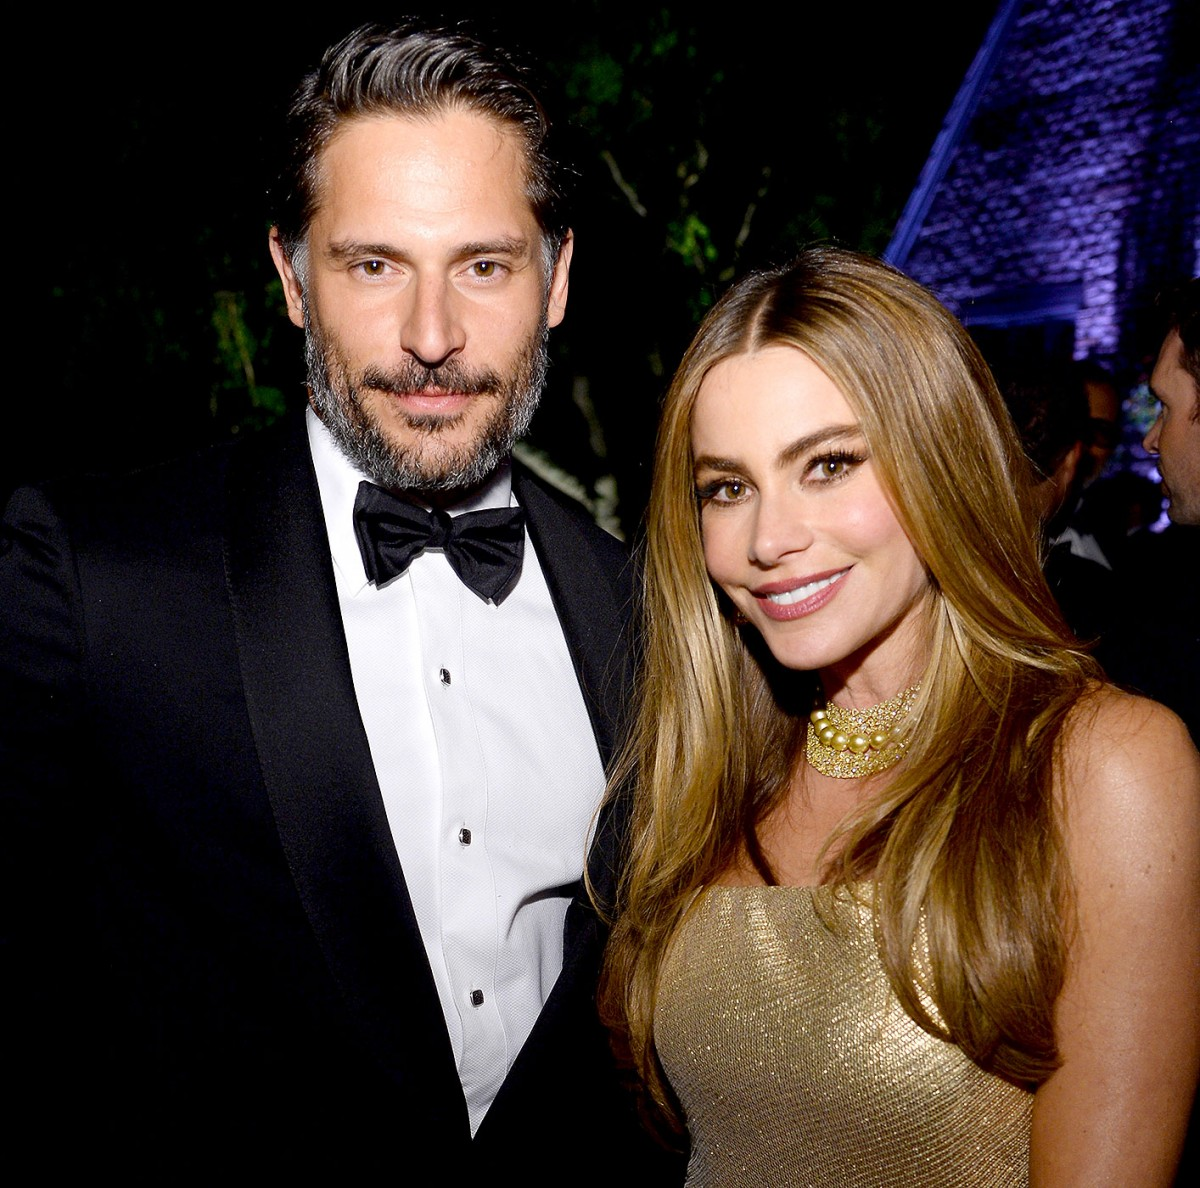 1404755852_joe-manganiello-sofia-vergara-zoom